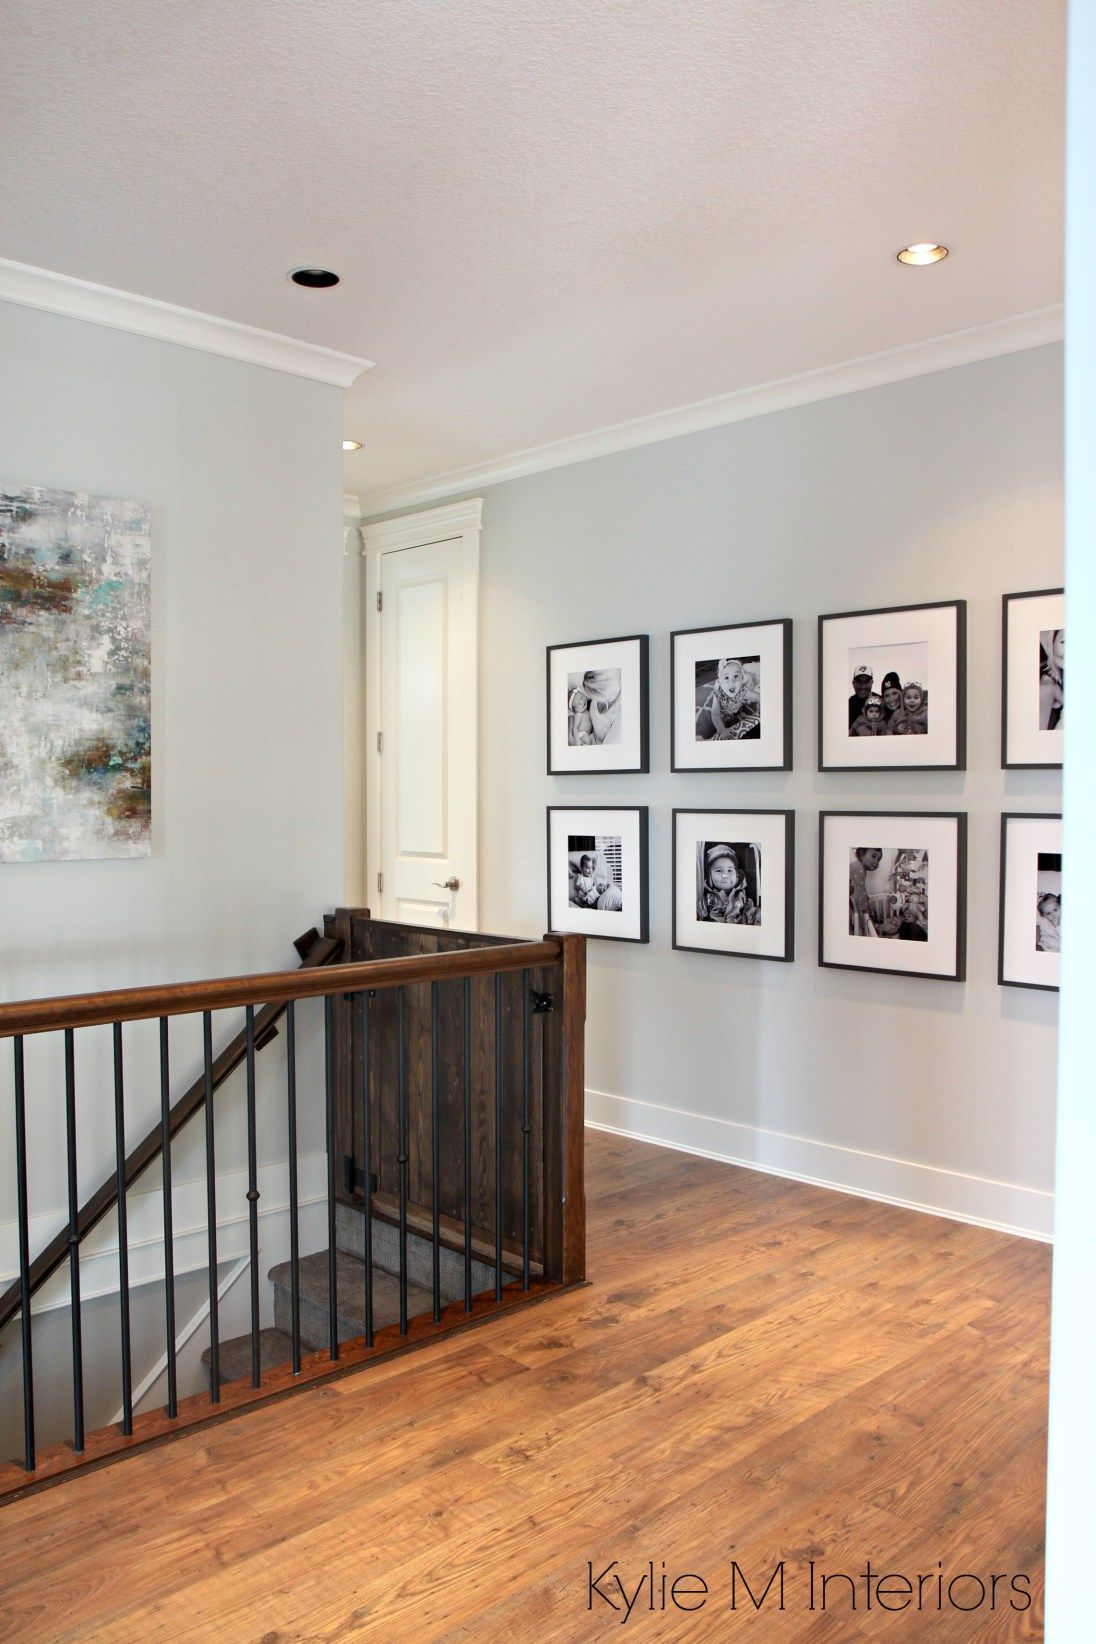 Benjamin Moore Gray Owl One Of The Best Paint Colours For A Dark Hallway Or Staircase By Kylie M Interiors With Photo Gallery Wall Kids And